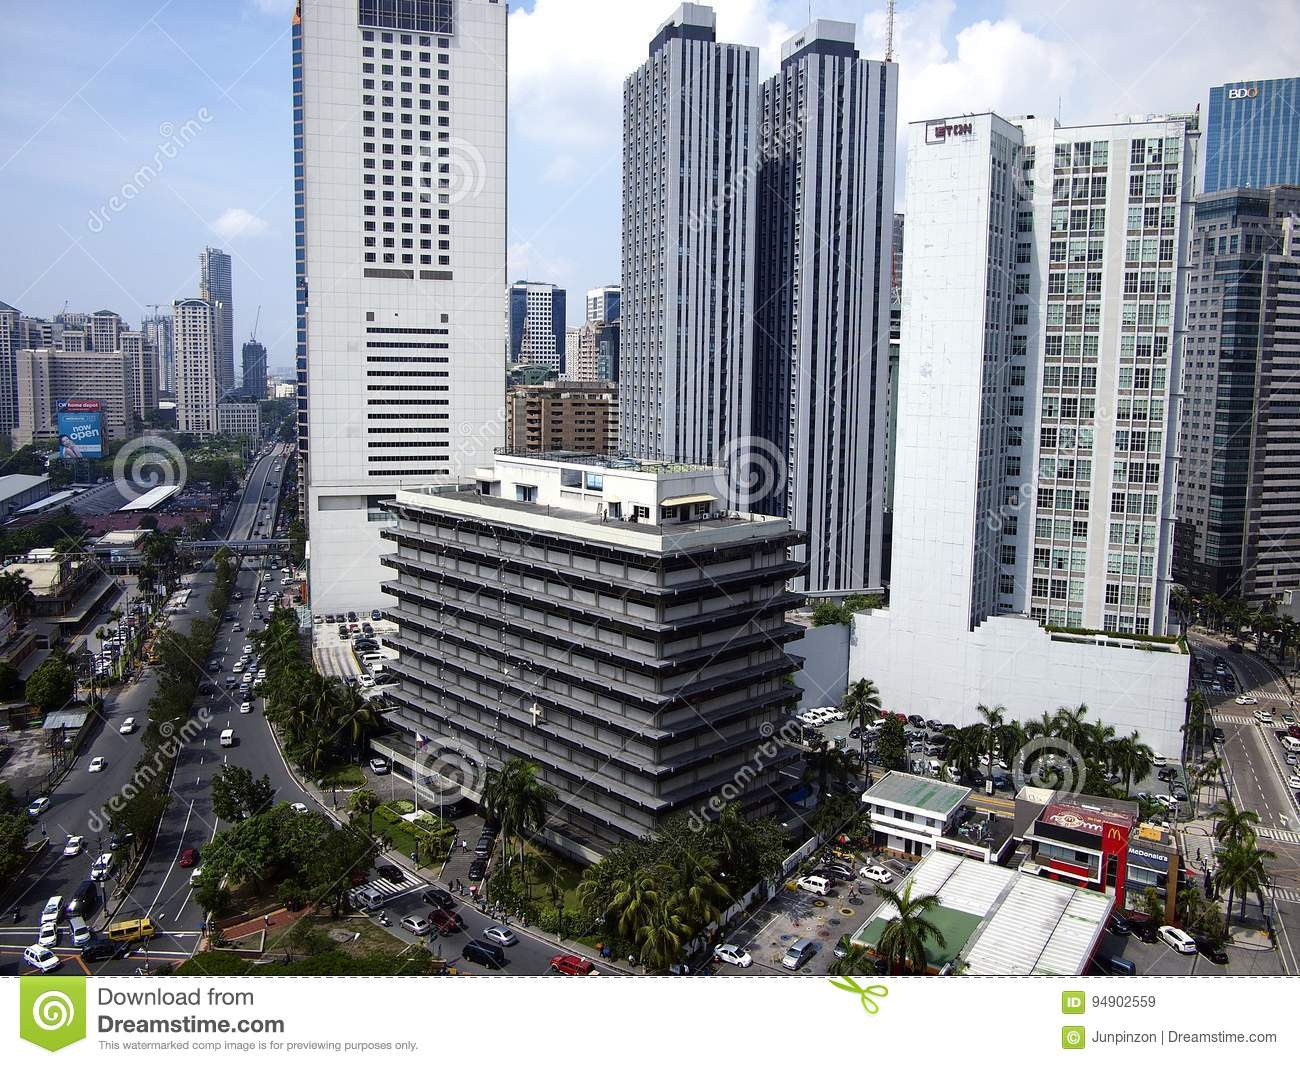 Residential and commercial buildings in Pasig City, Philippines.